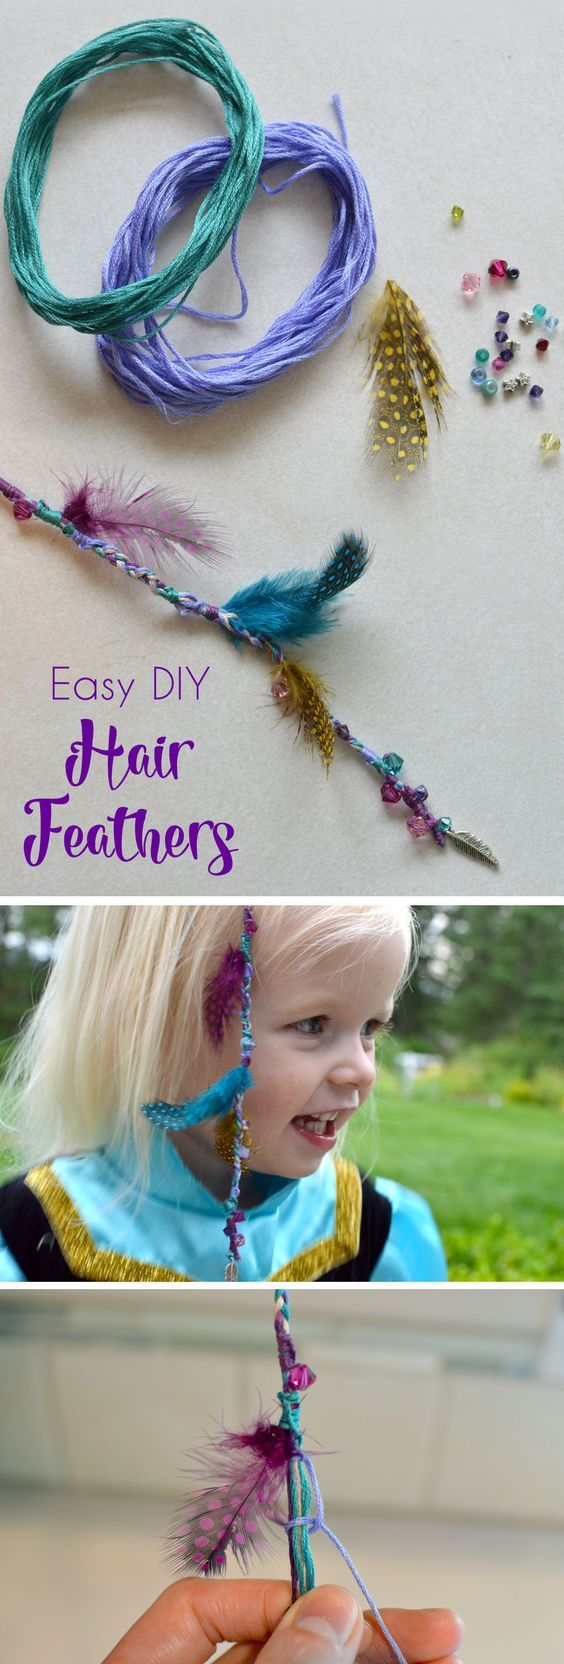 Feather Hair Accessories Essential Oil Skincare Pinterest